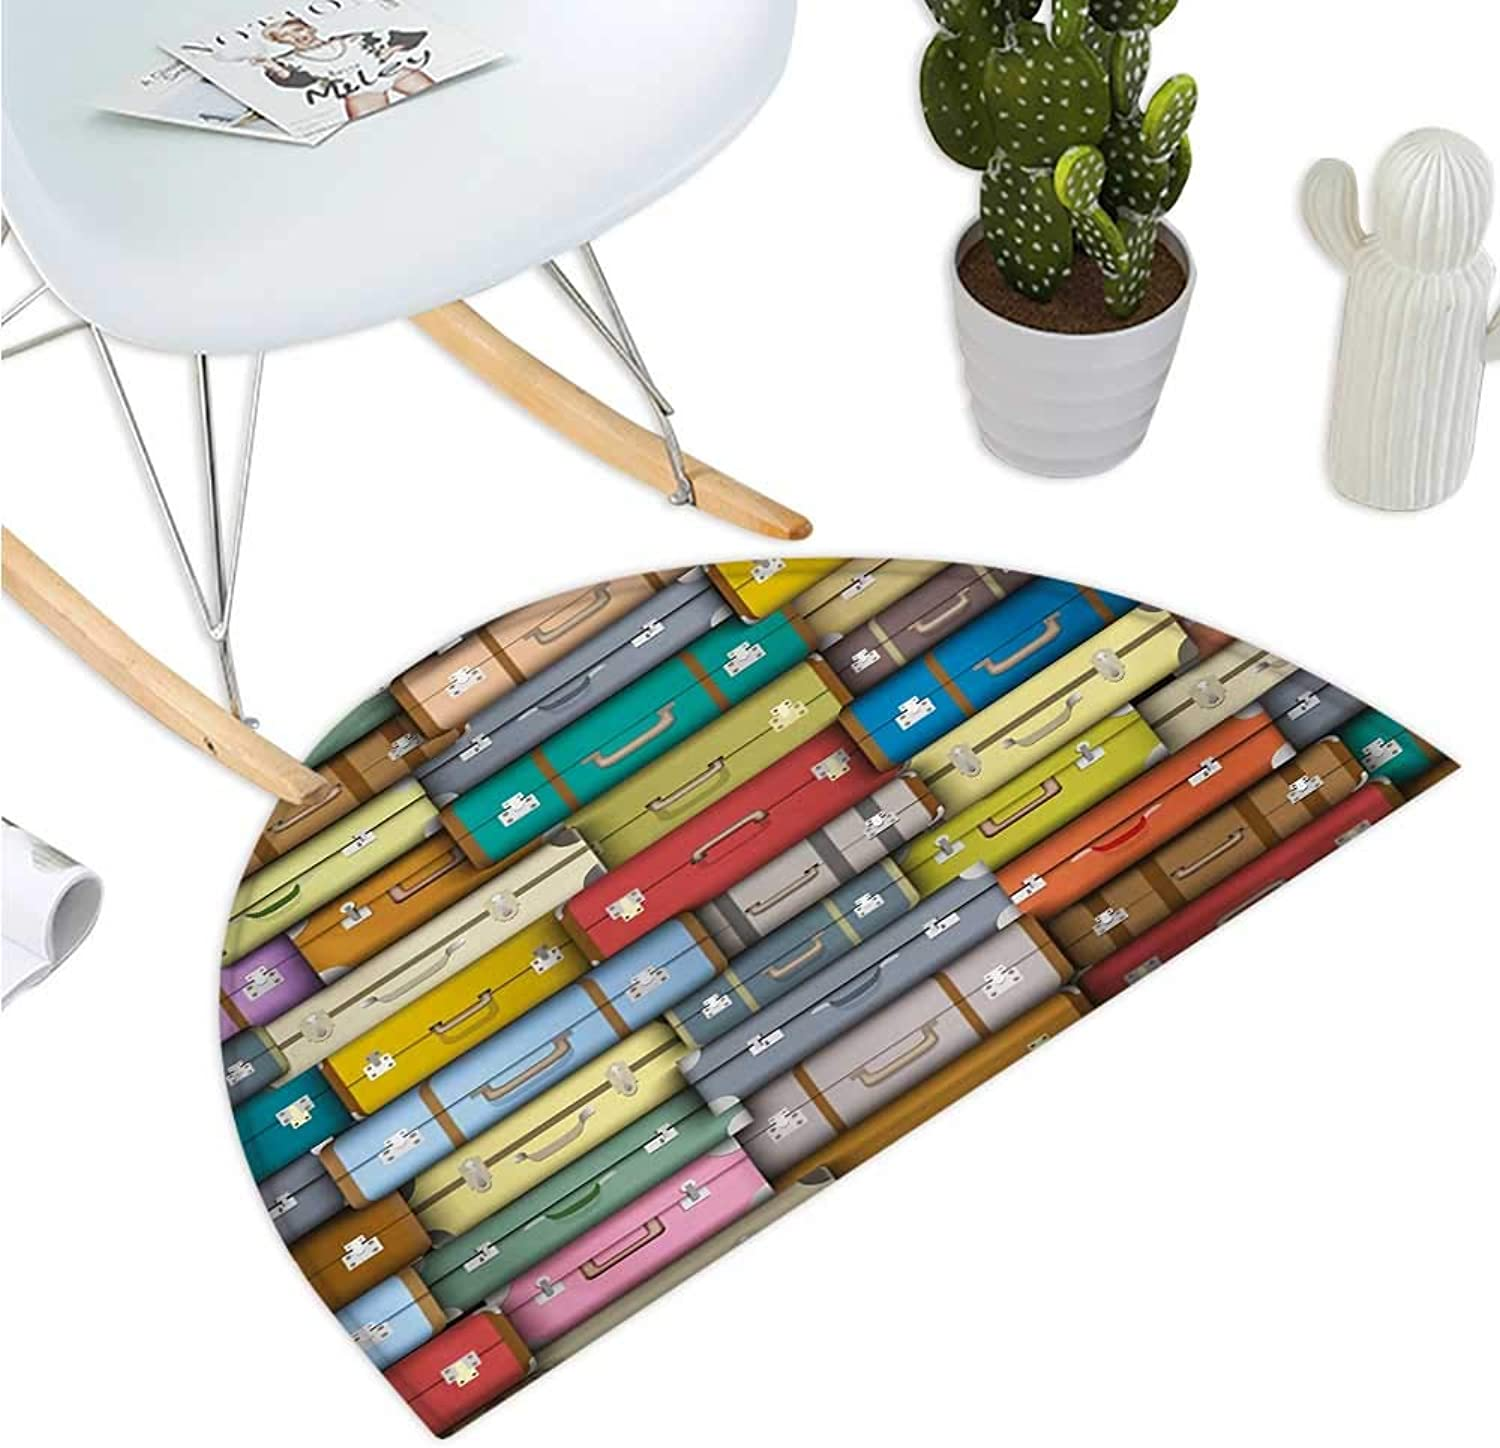 Modern Semicircular Cushion colorful Suitcases Background Vintage Travel Voyage Holiday Themed Artful Design Entry Door Mat H 39.3  xD 59  Multicolor